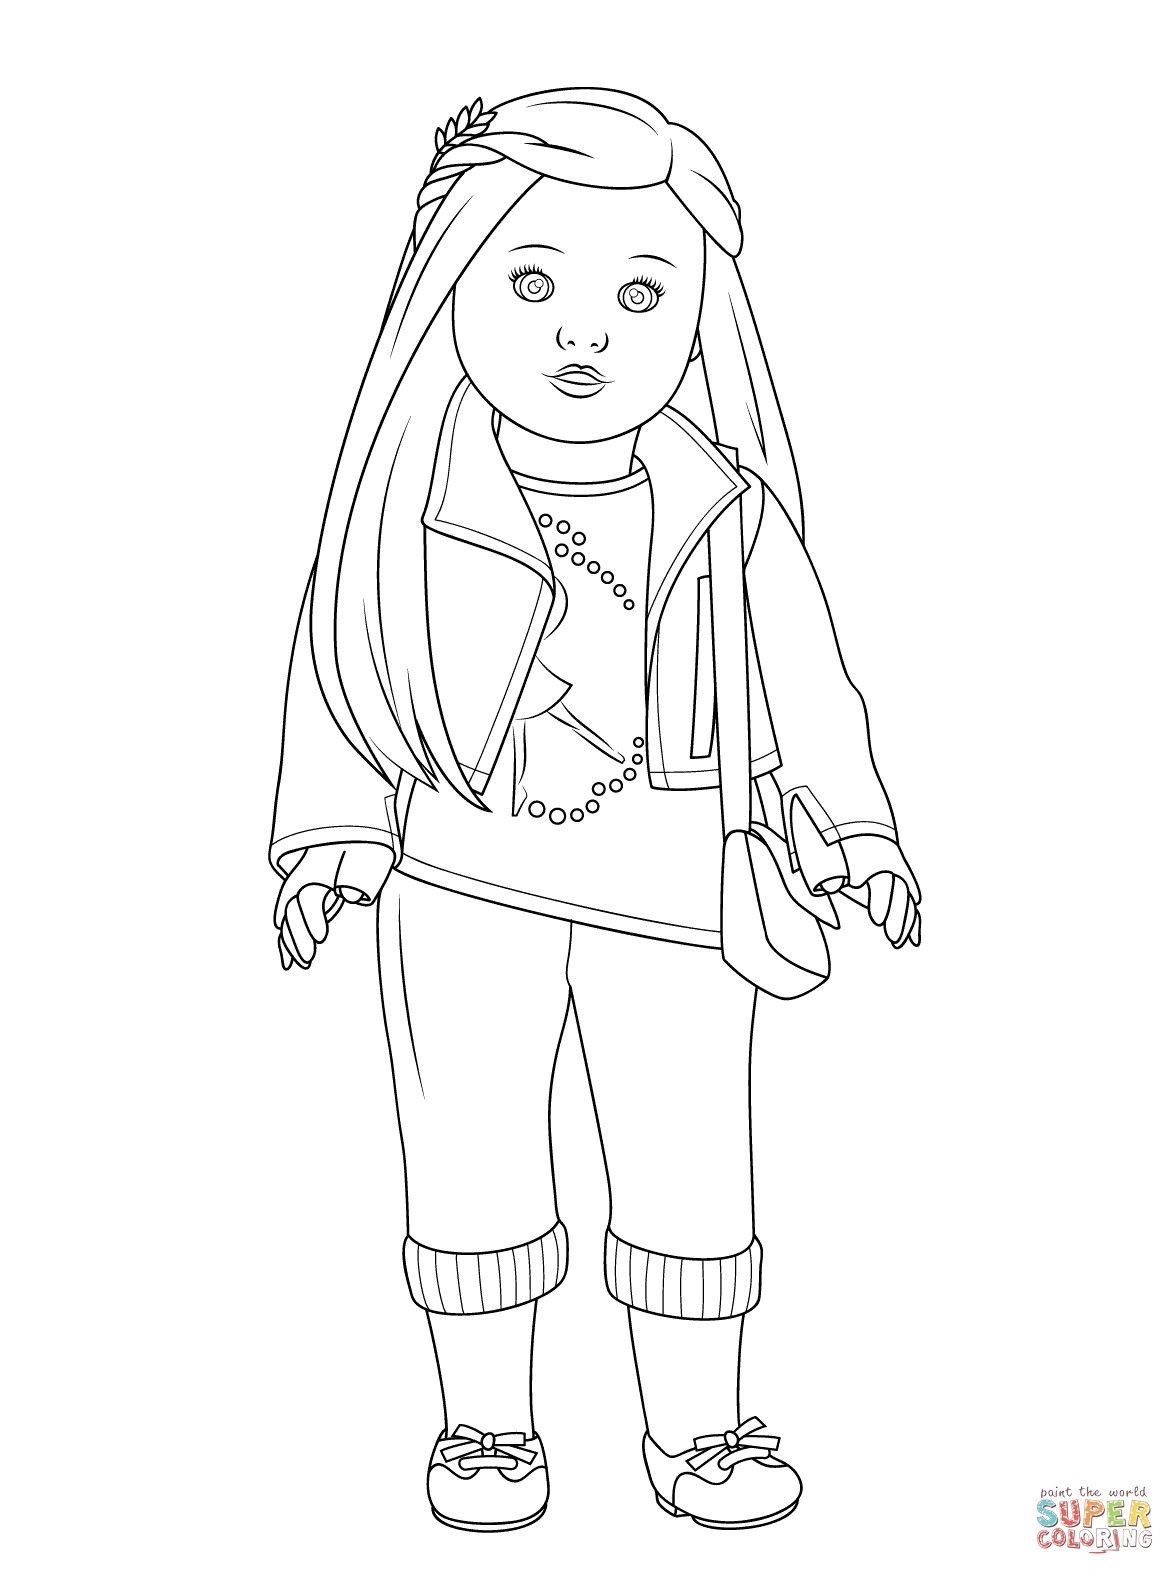 free girl coloring pages to print lol doll luxe coloring page free printable coloring pages to coloring girl print free